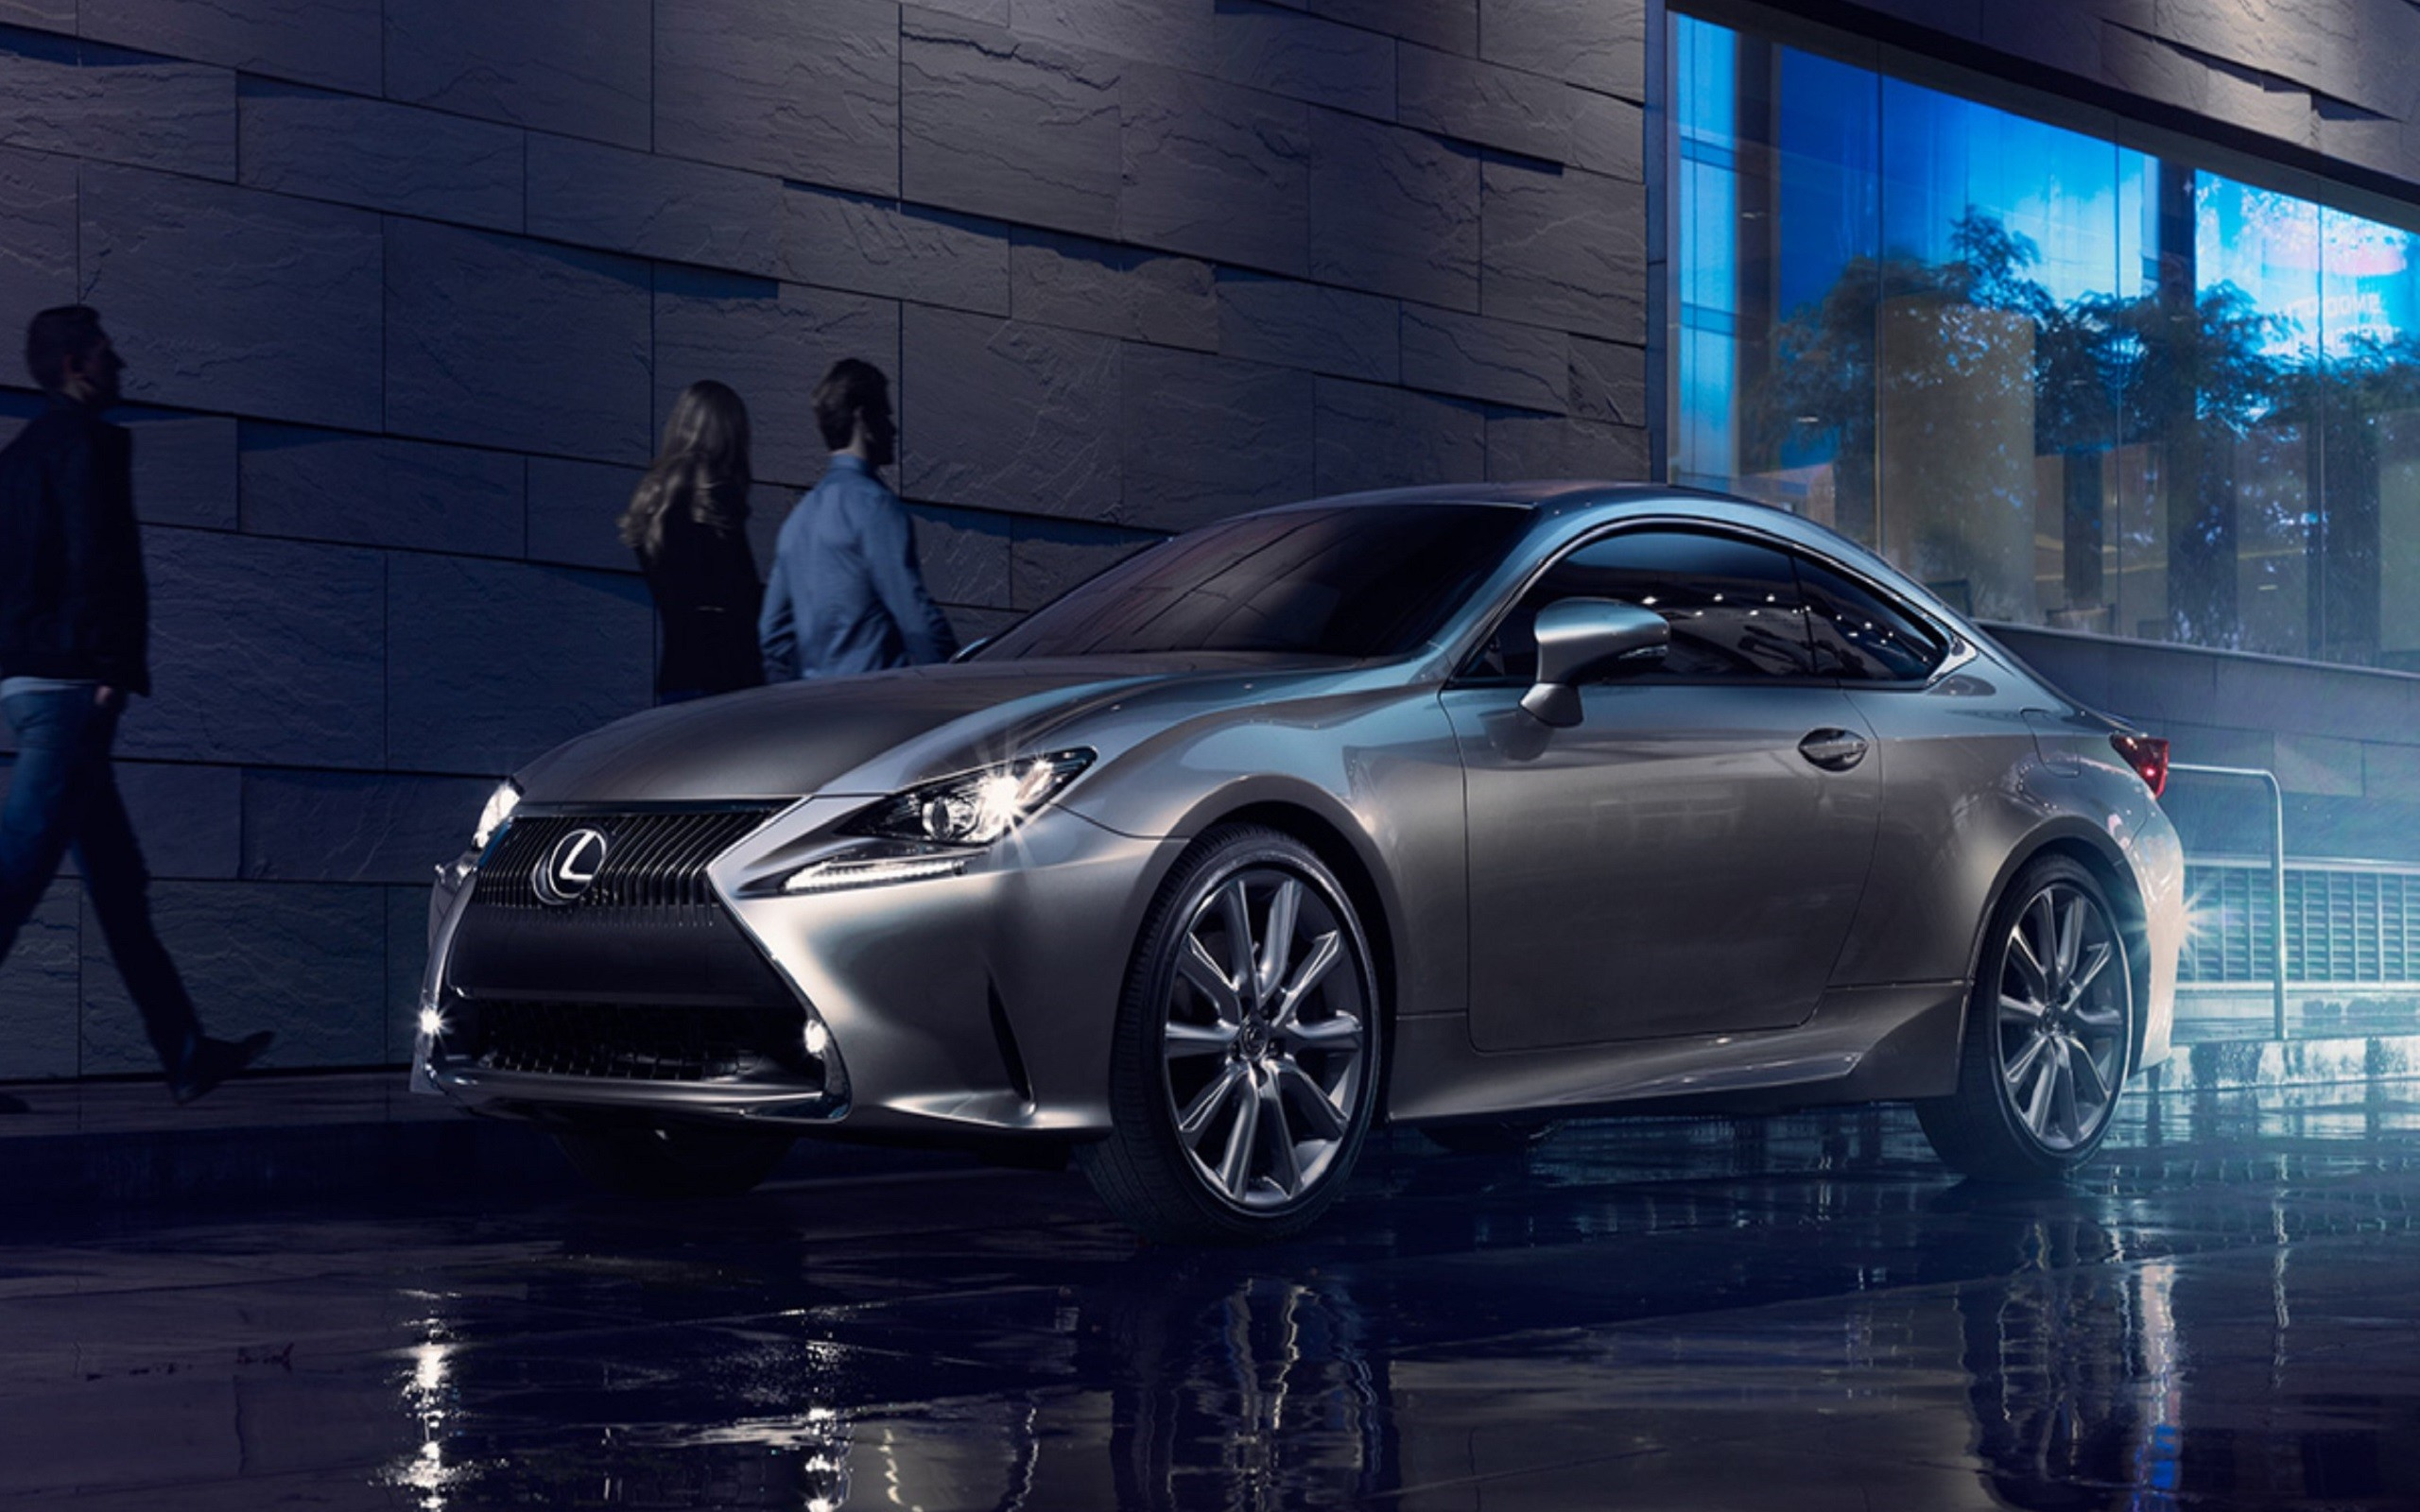 2560x1600 RC Coupe Background HD Wallpaper, Lexus, Hd Car Images, Tuning, Tires,